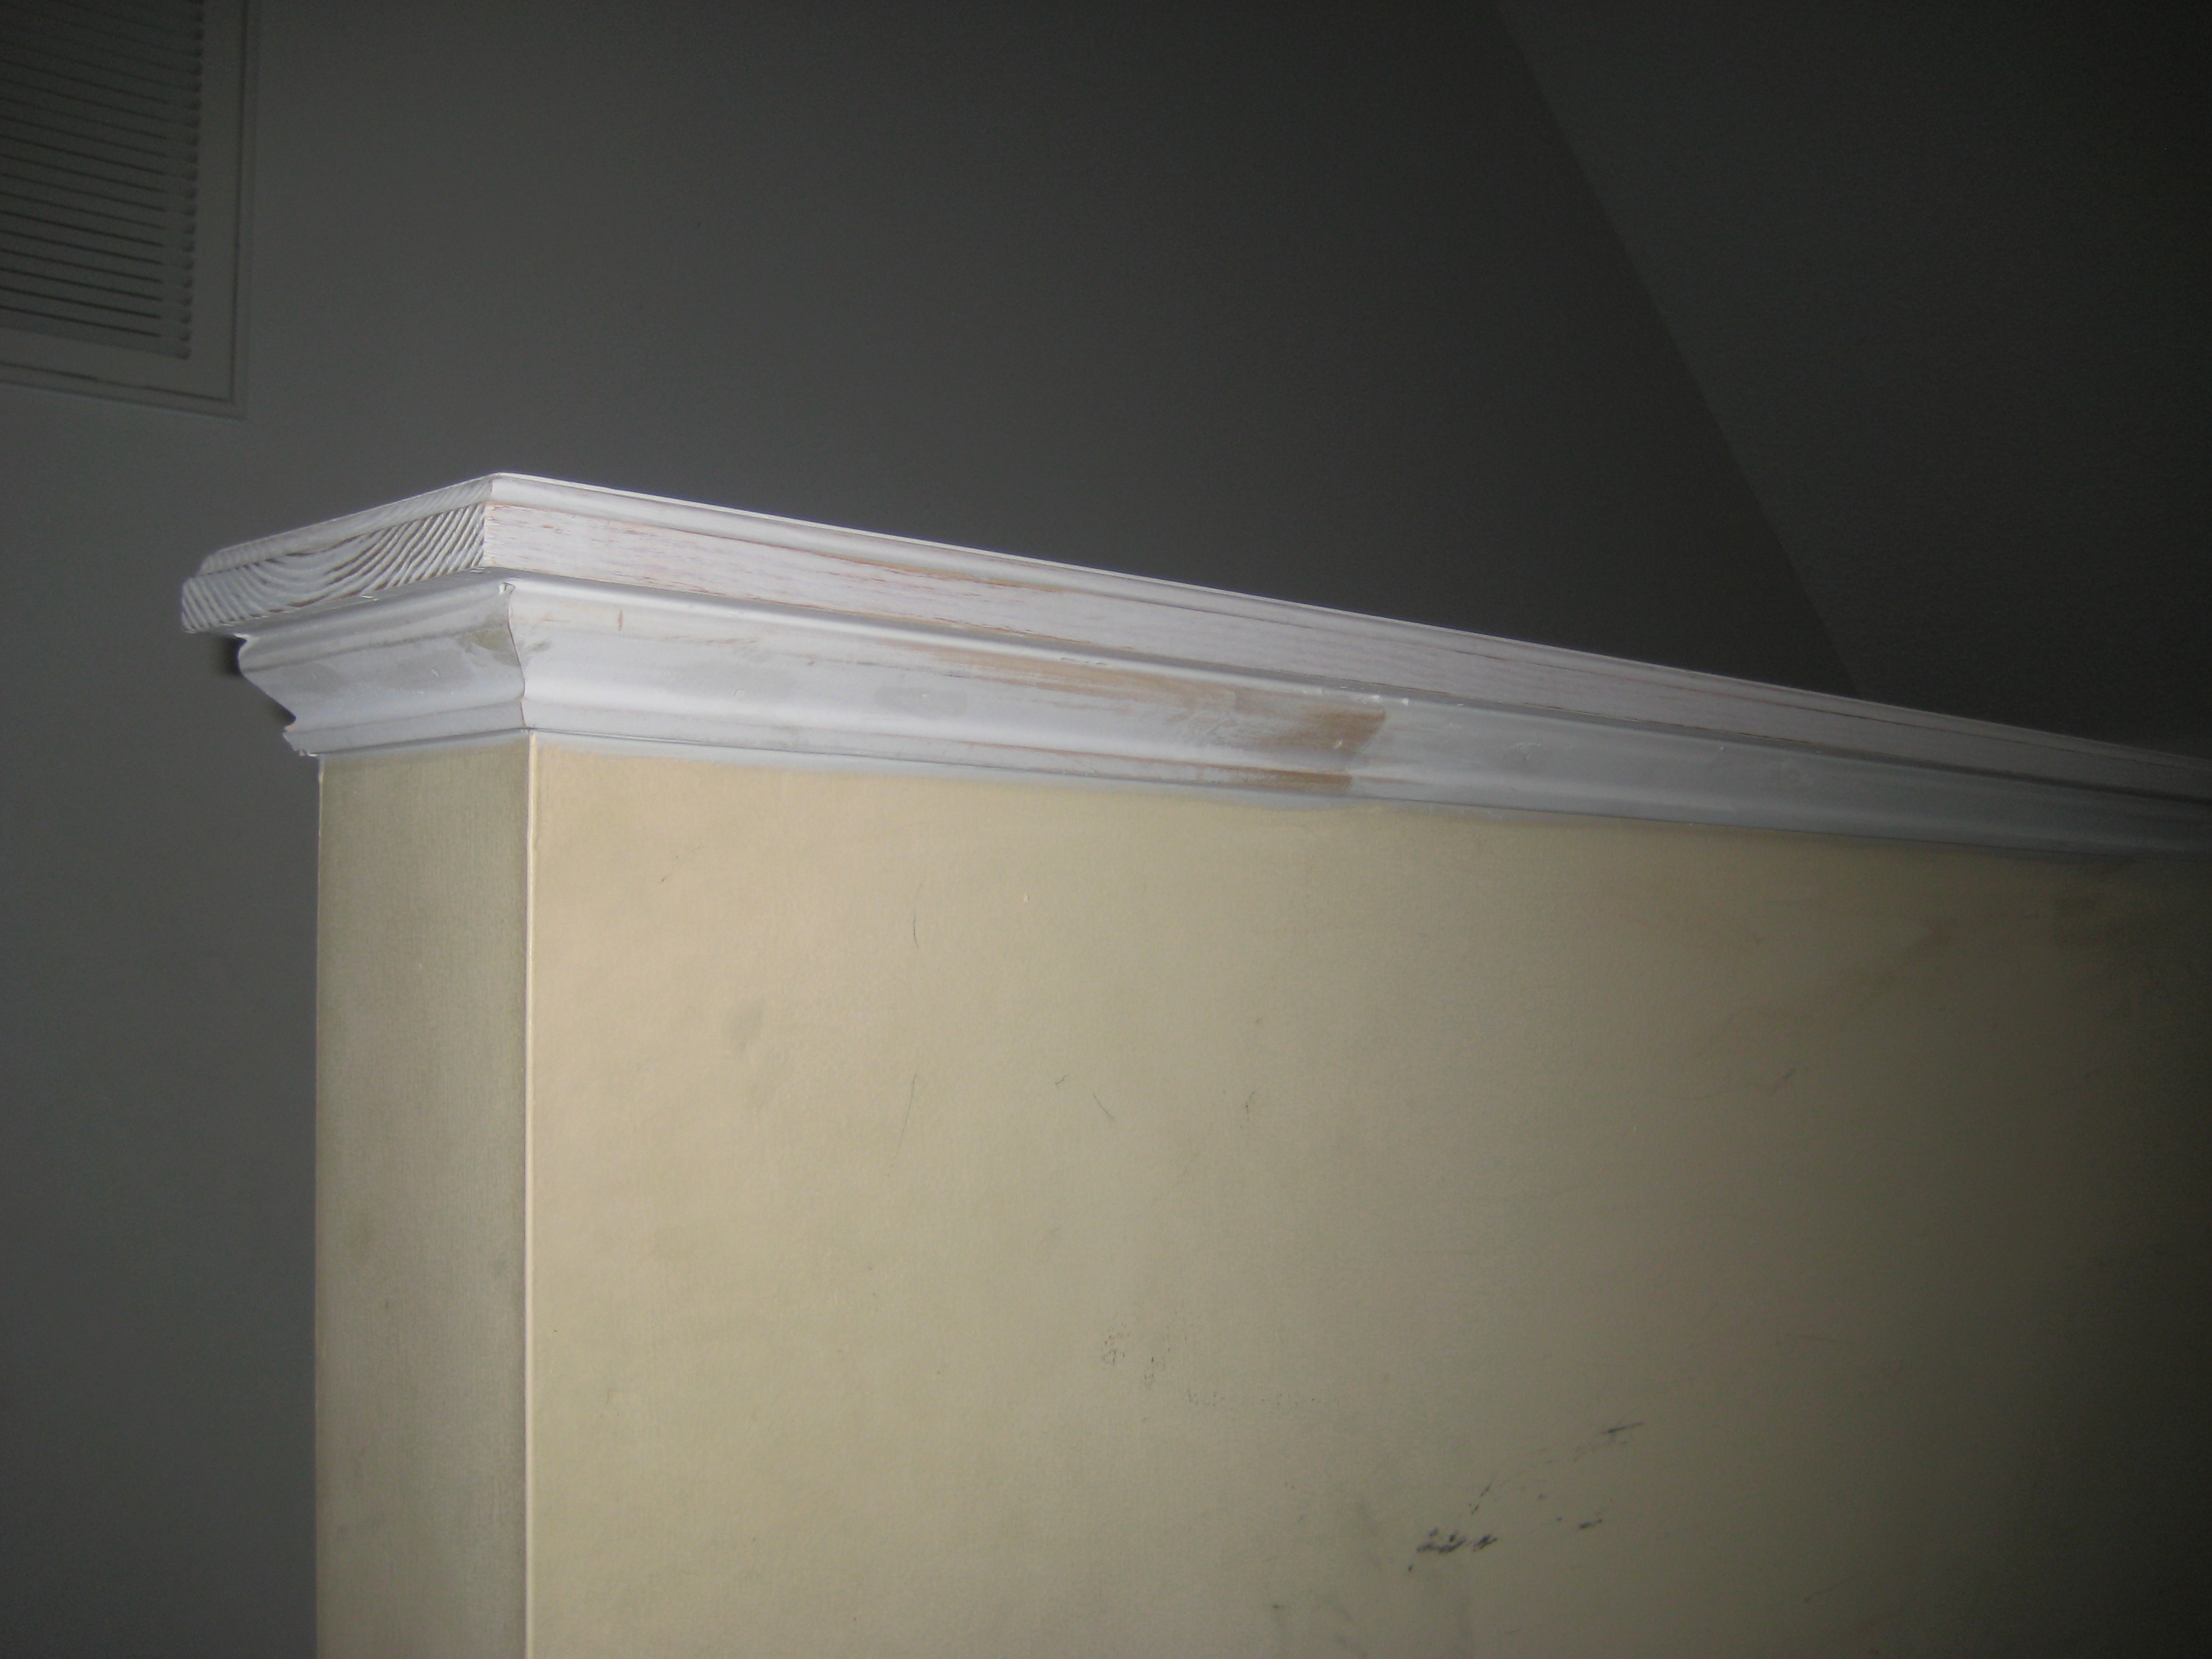 Half Wall Cap Molding Www Thefinishingcompany Net